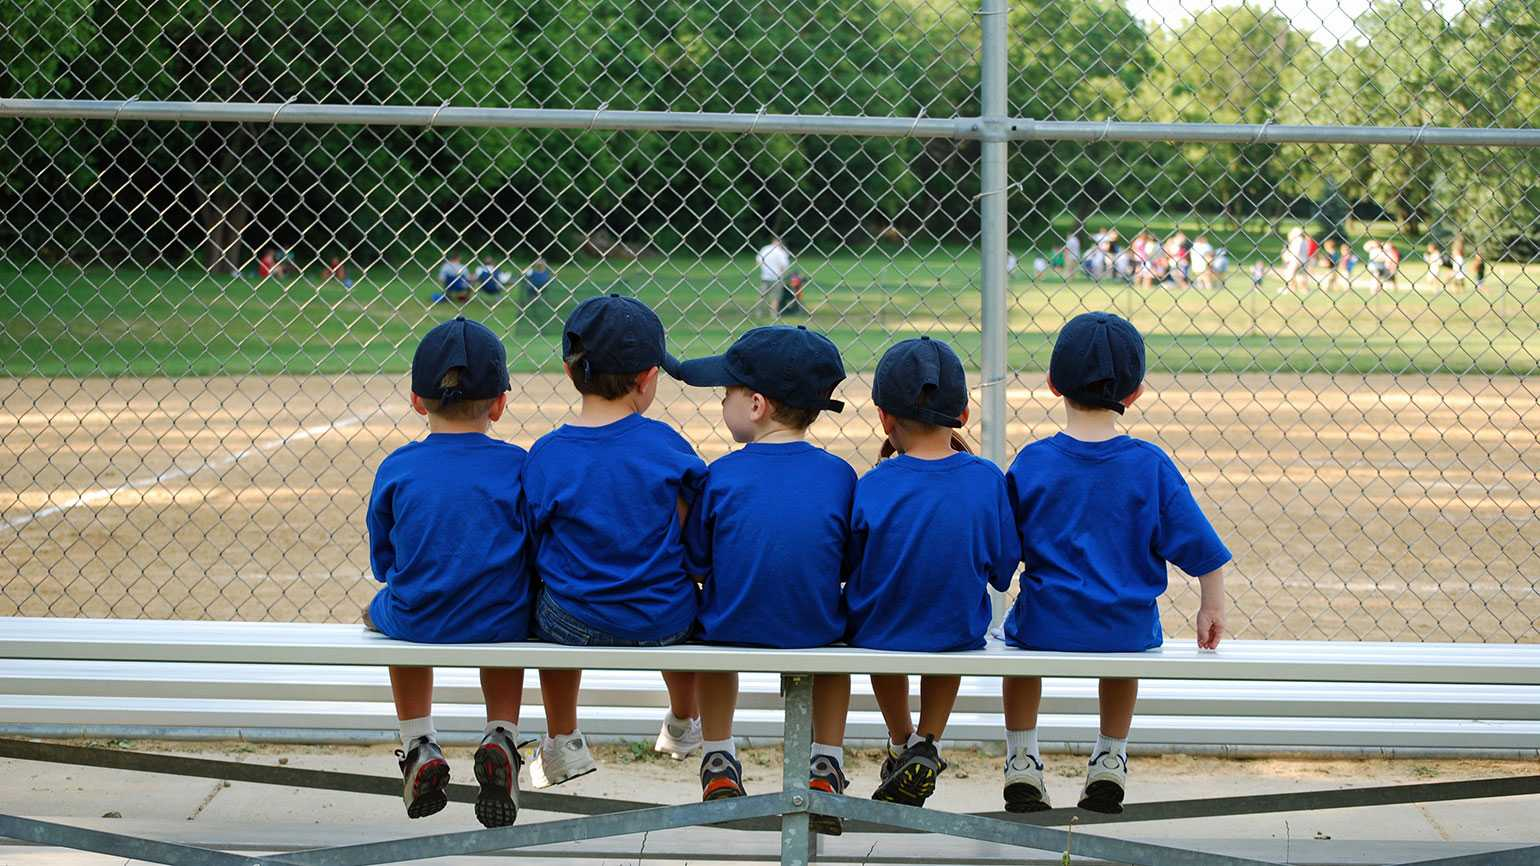 A quintet of Little Leaguers watch the action on the field